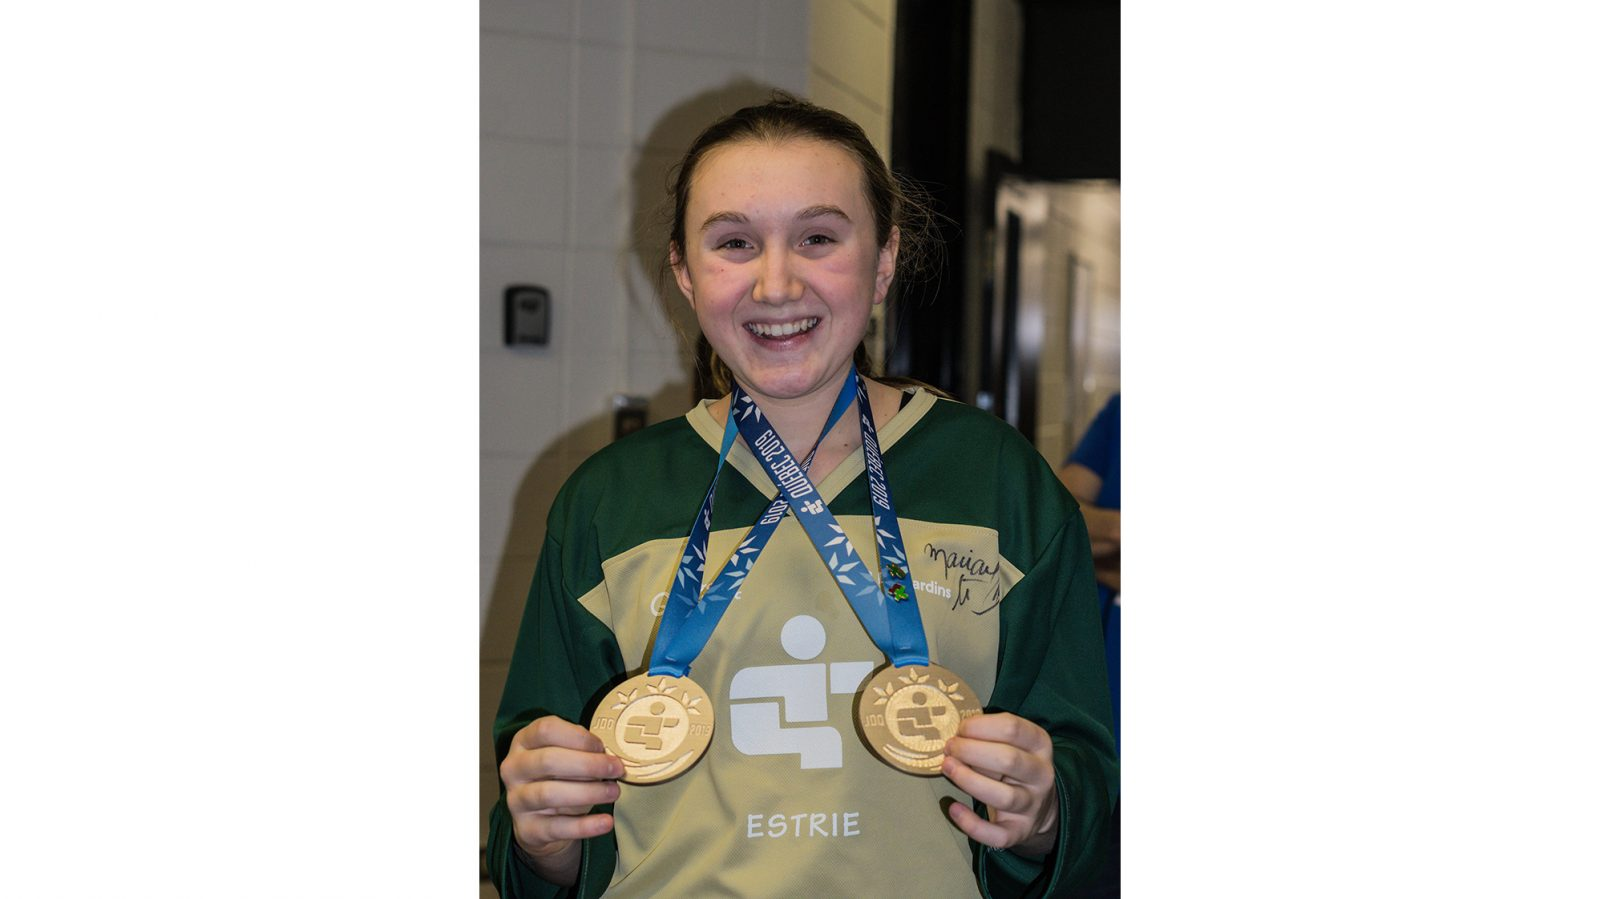 Double speed skating gold medals for Amelia Blinn